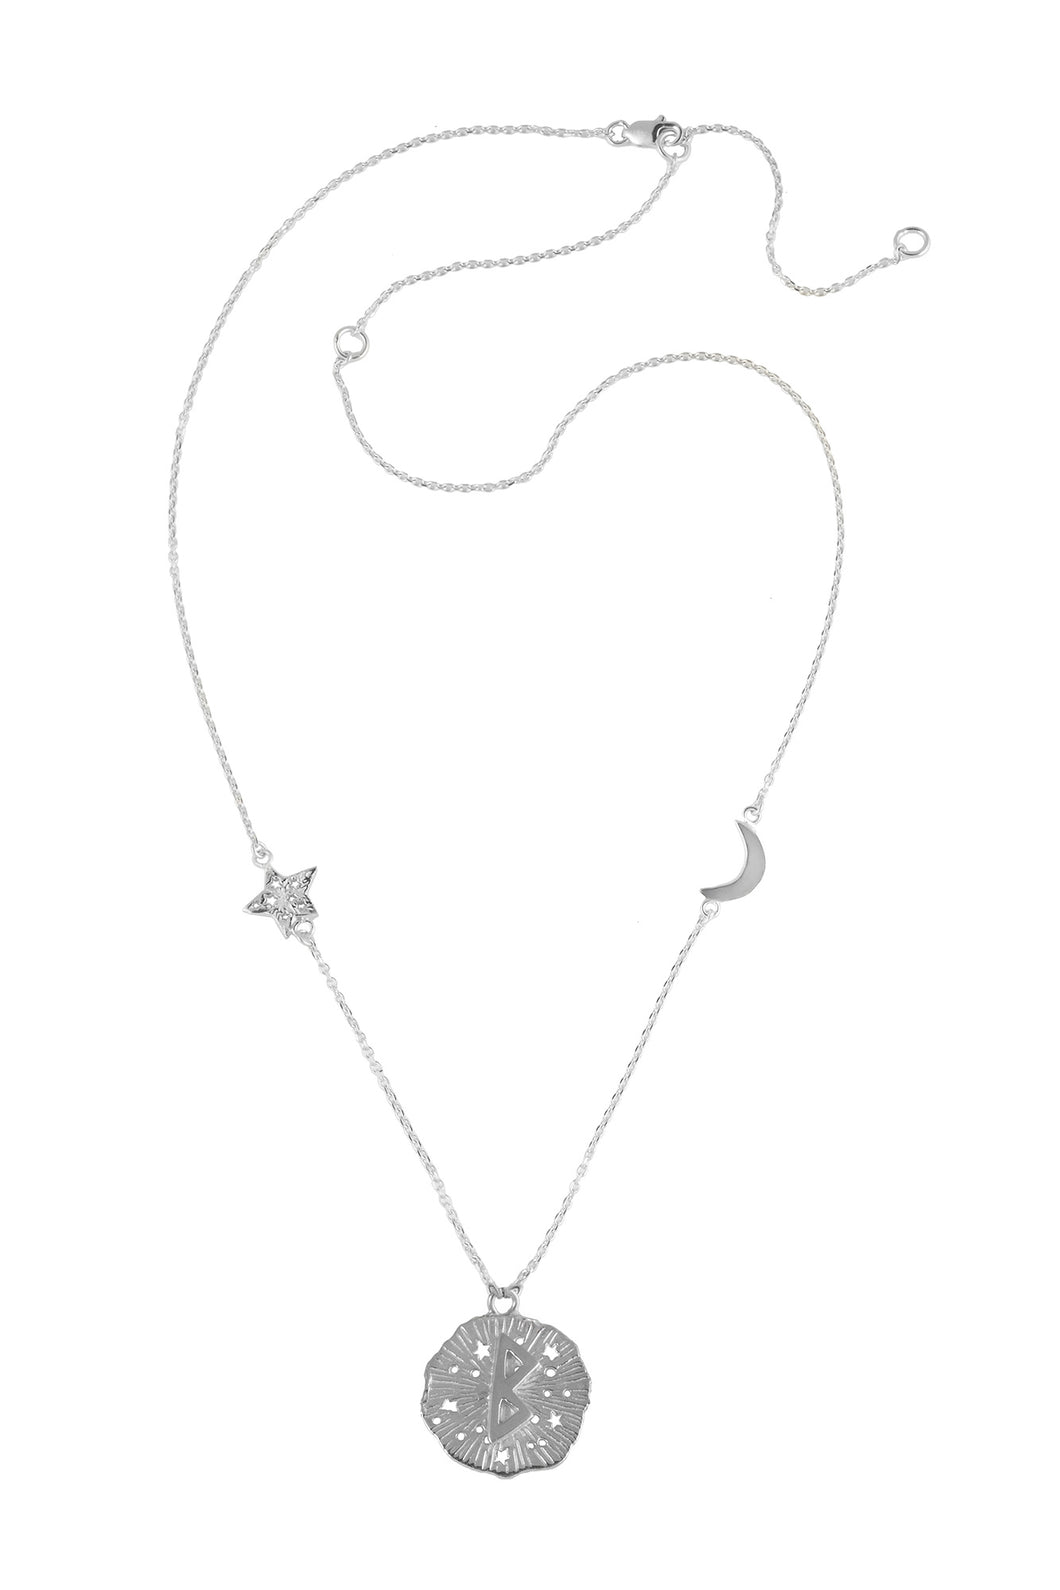 Chain necklace with small runic pendant Berkana, star and moon, 46 сm. Silver.